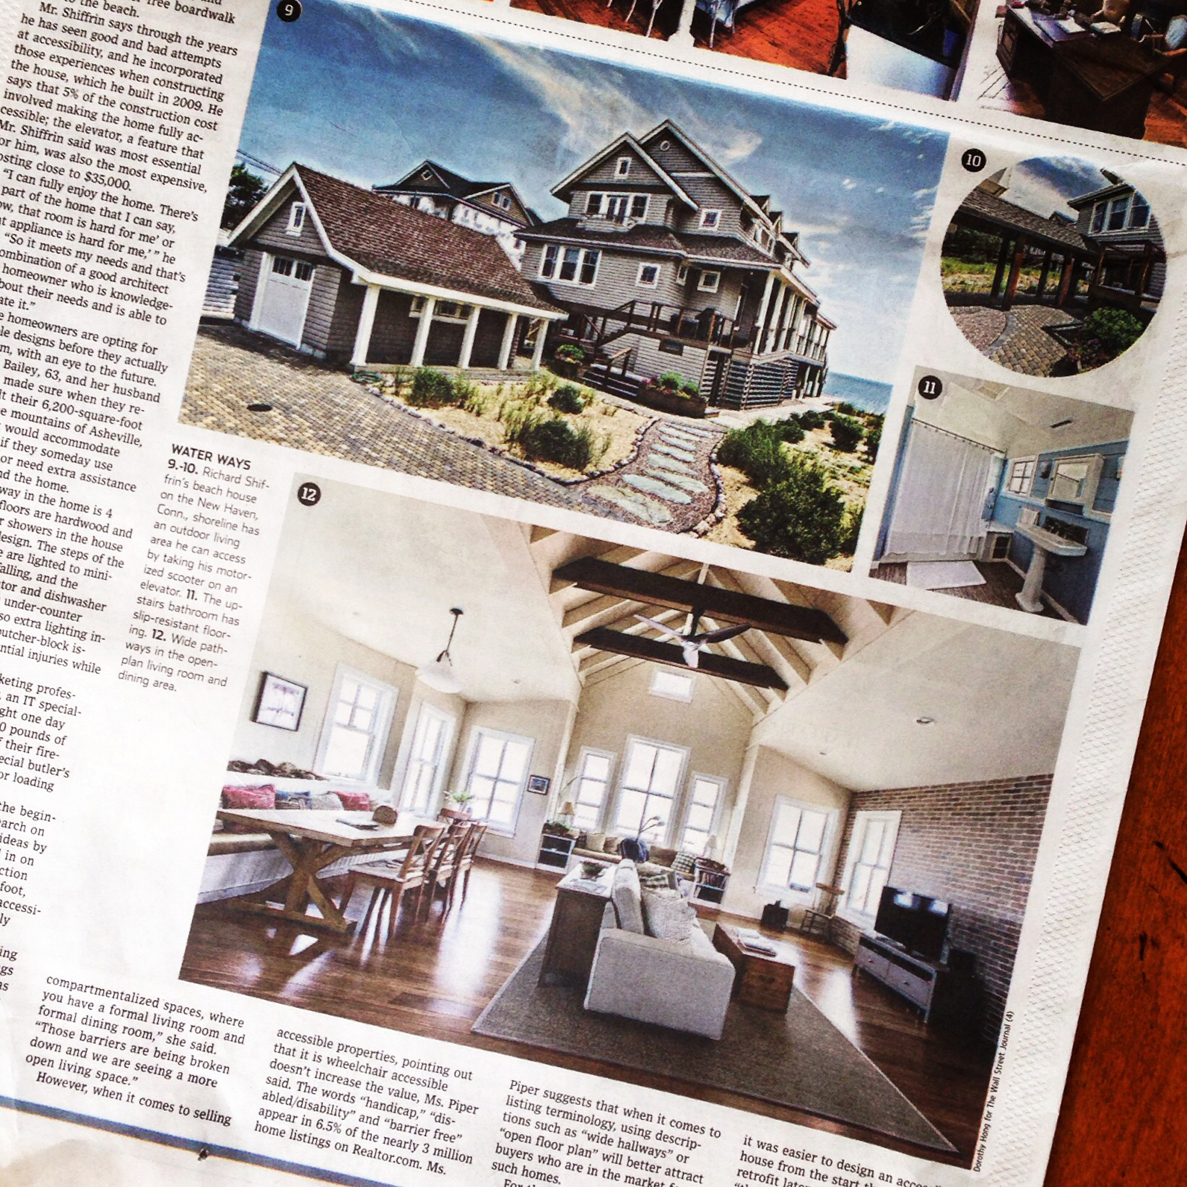 Wall Street Journal 2014- Featured Architect